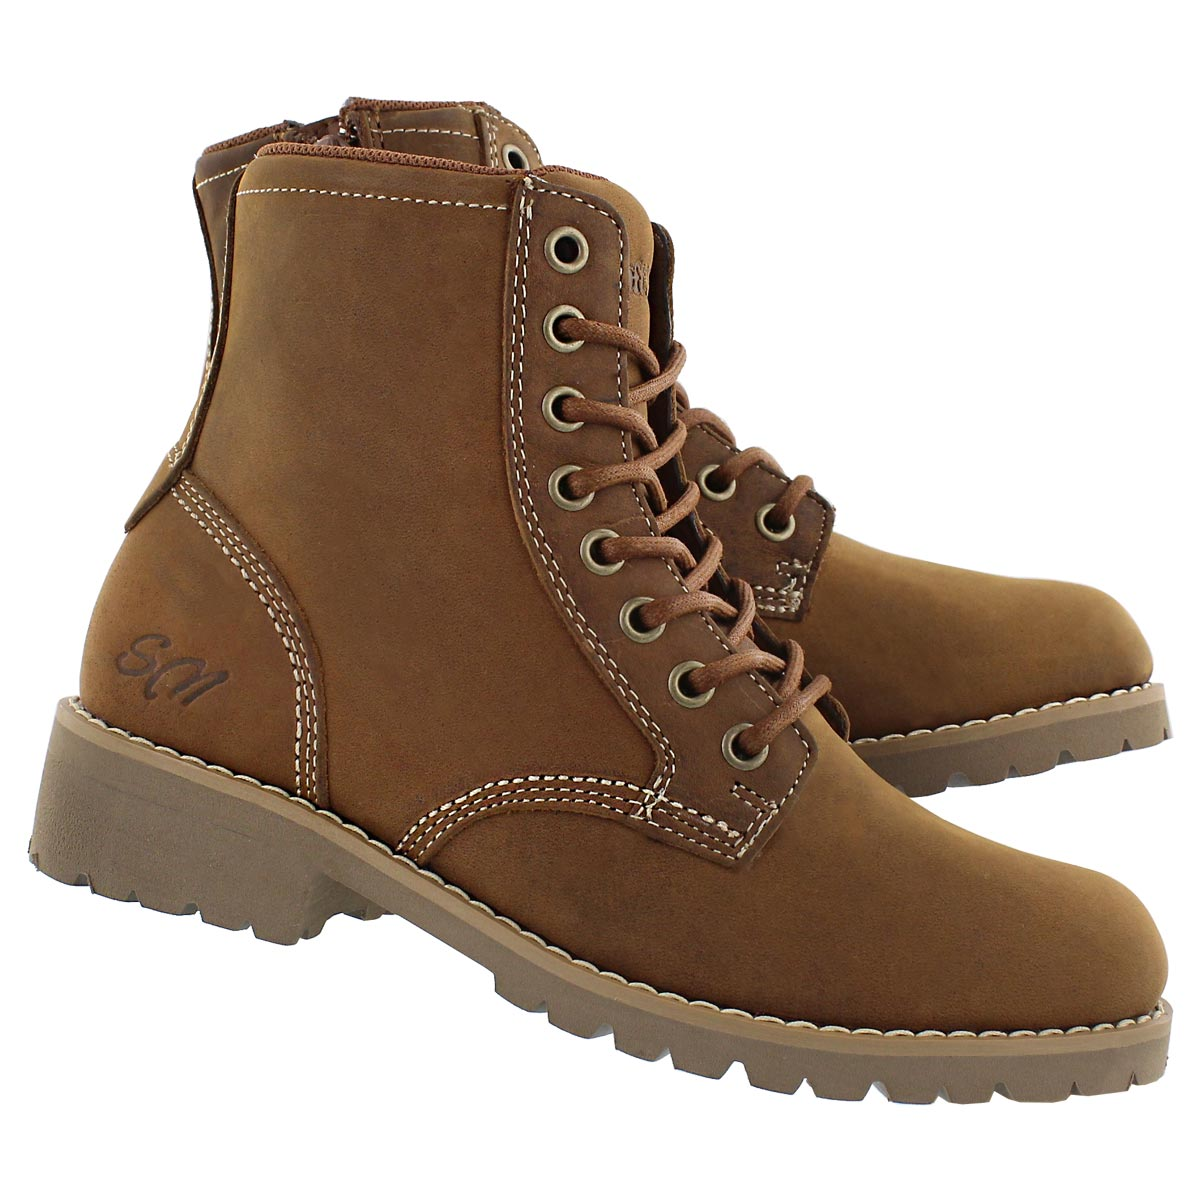 Lds Dalisse tan casual combat boot